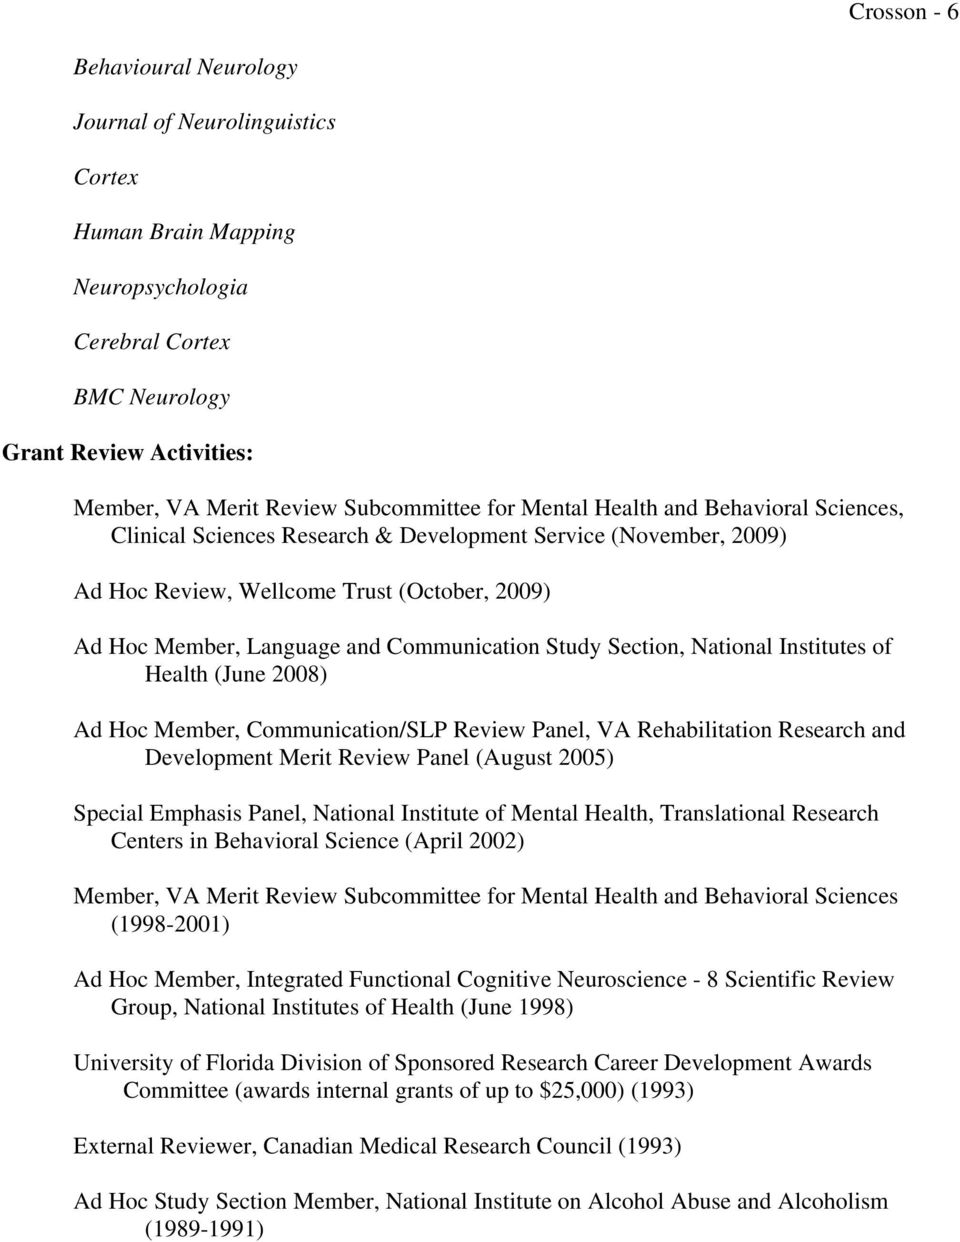 Study Section, National Institutes of Health (June 2008) Ad Hoc Member, Communication/SLP Review Panel, VA Rehabilitation Research and Development Merit Review Panel (August 2005) Special Emphasis